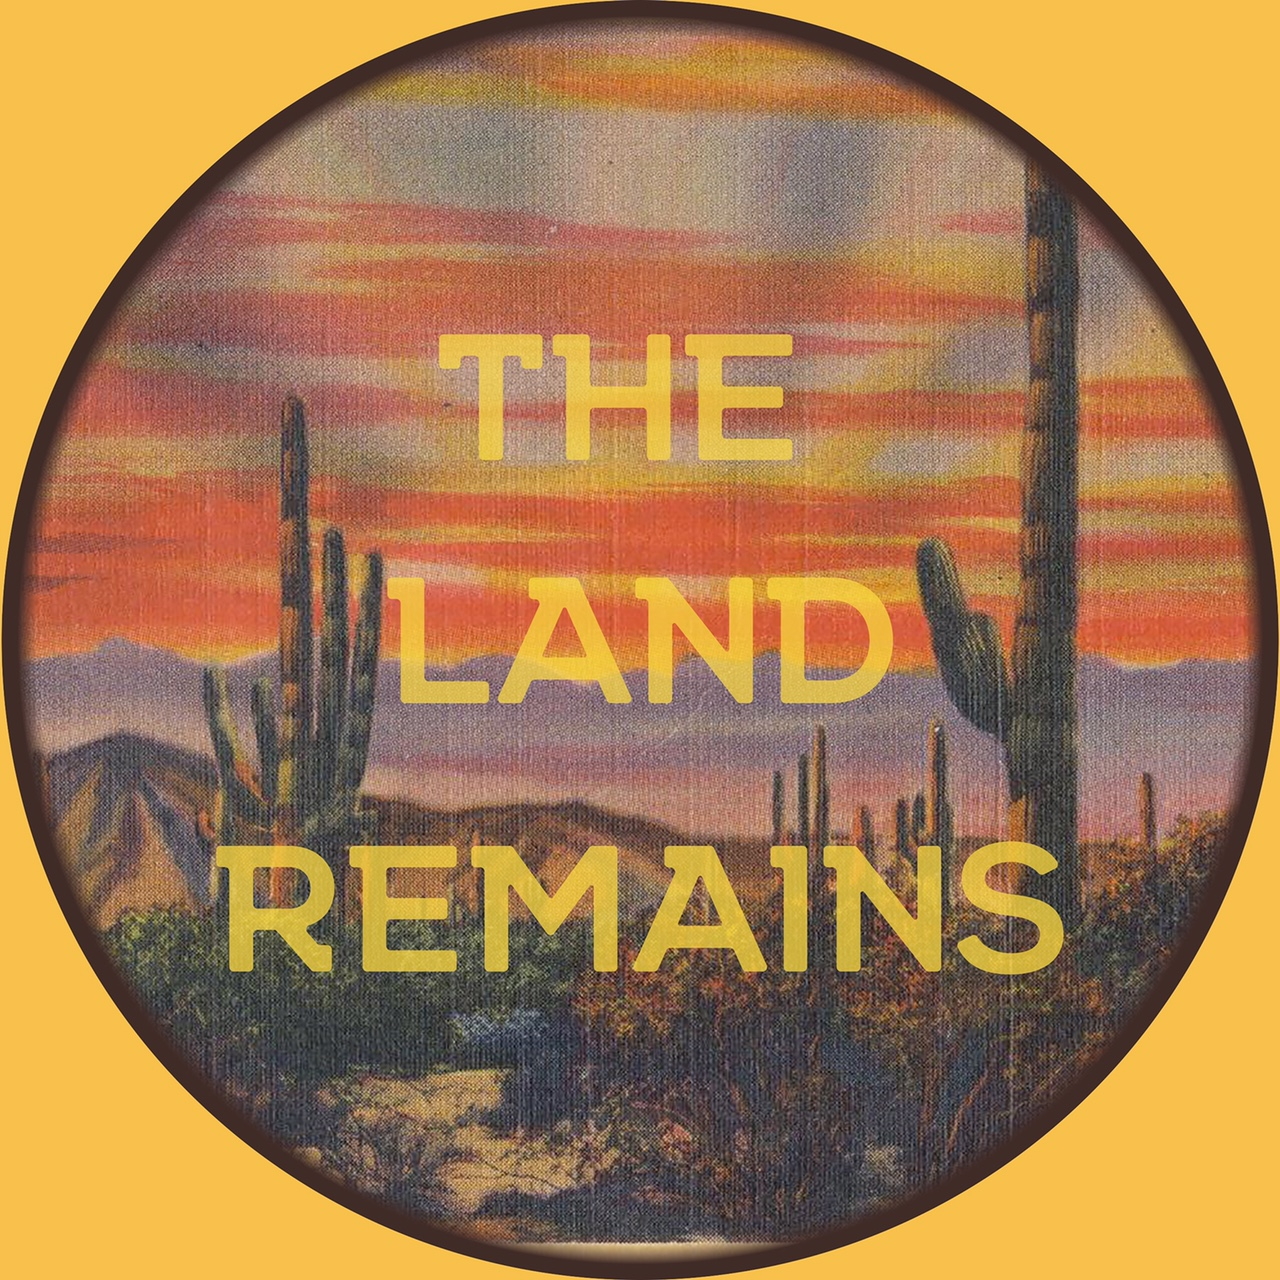 info@thelandremains.com - Email us for inquiries, collaborations or ideas. We look forward to hearing from you.